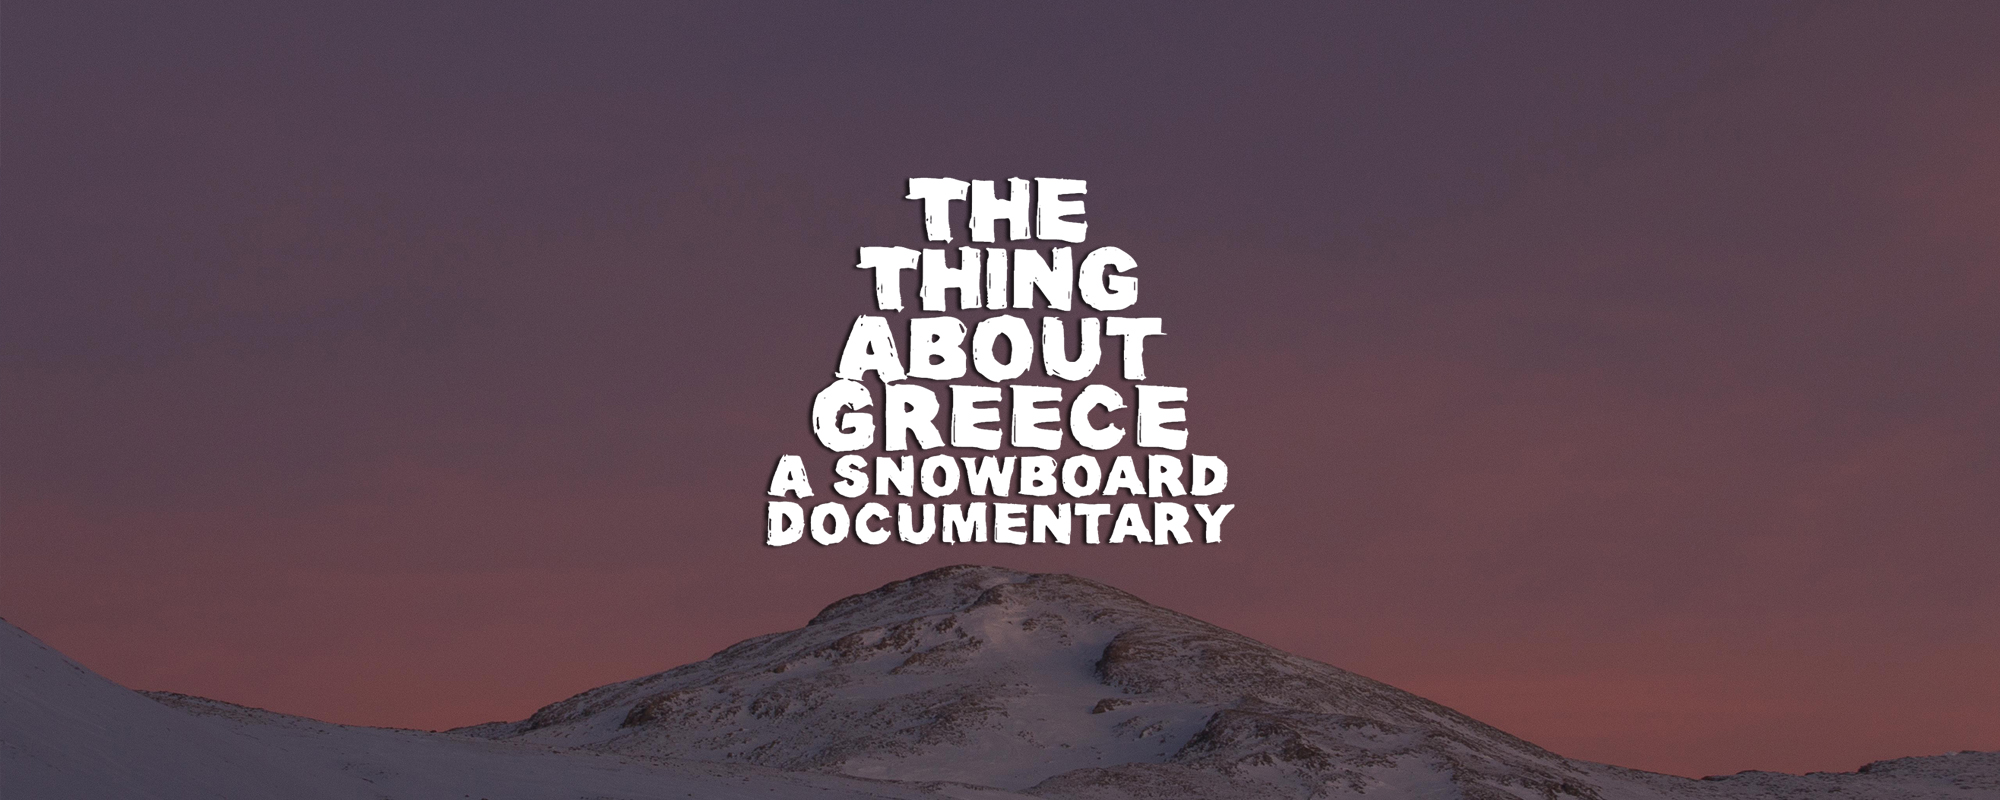 THE THING ABOUT GREECE – The Beginning